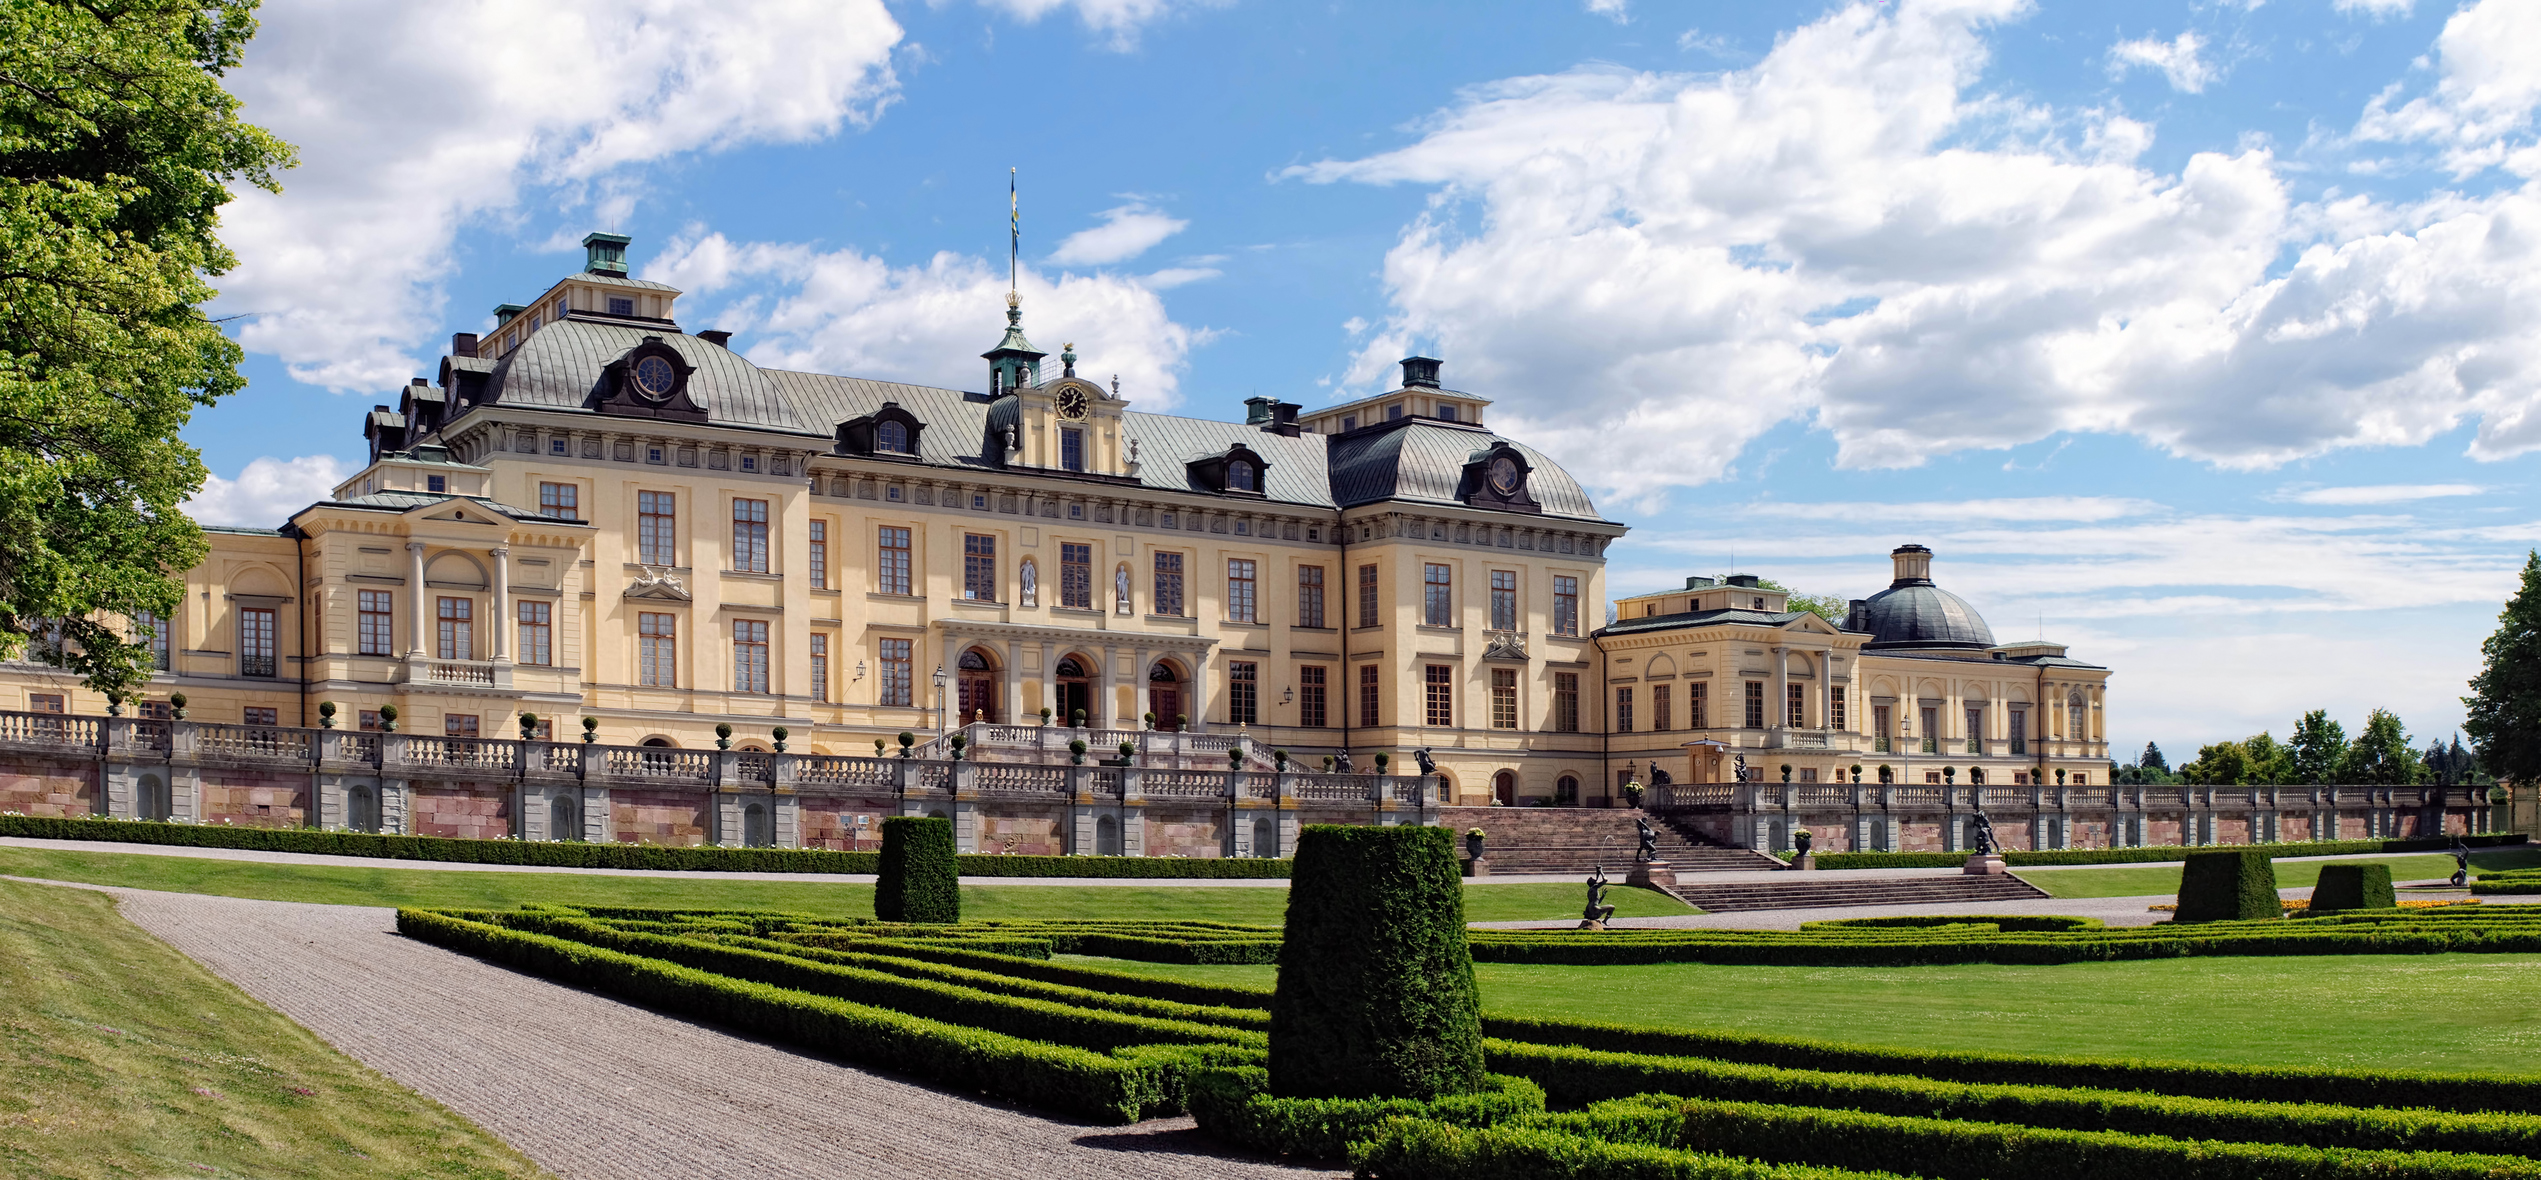 Royal Palace in Drottningholm